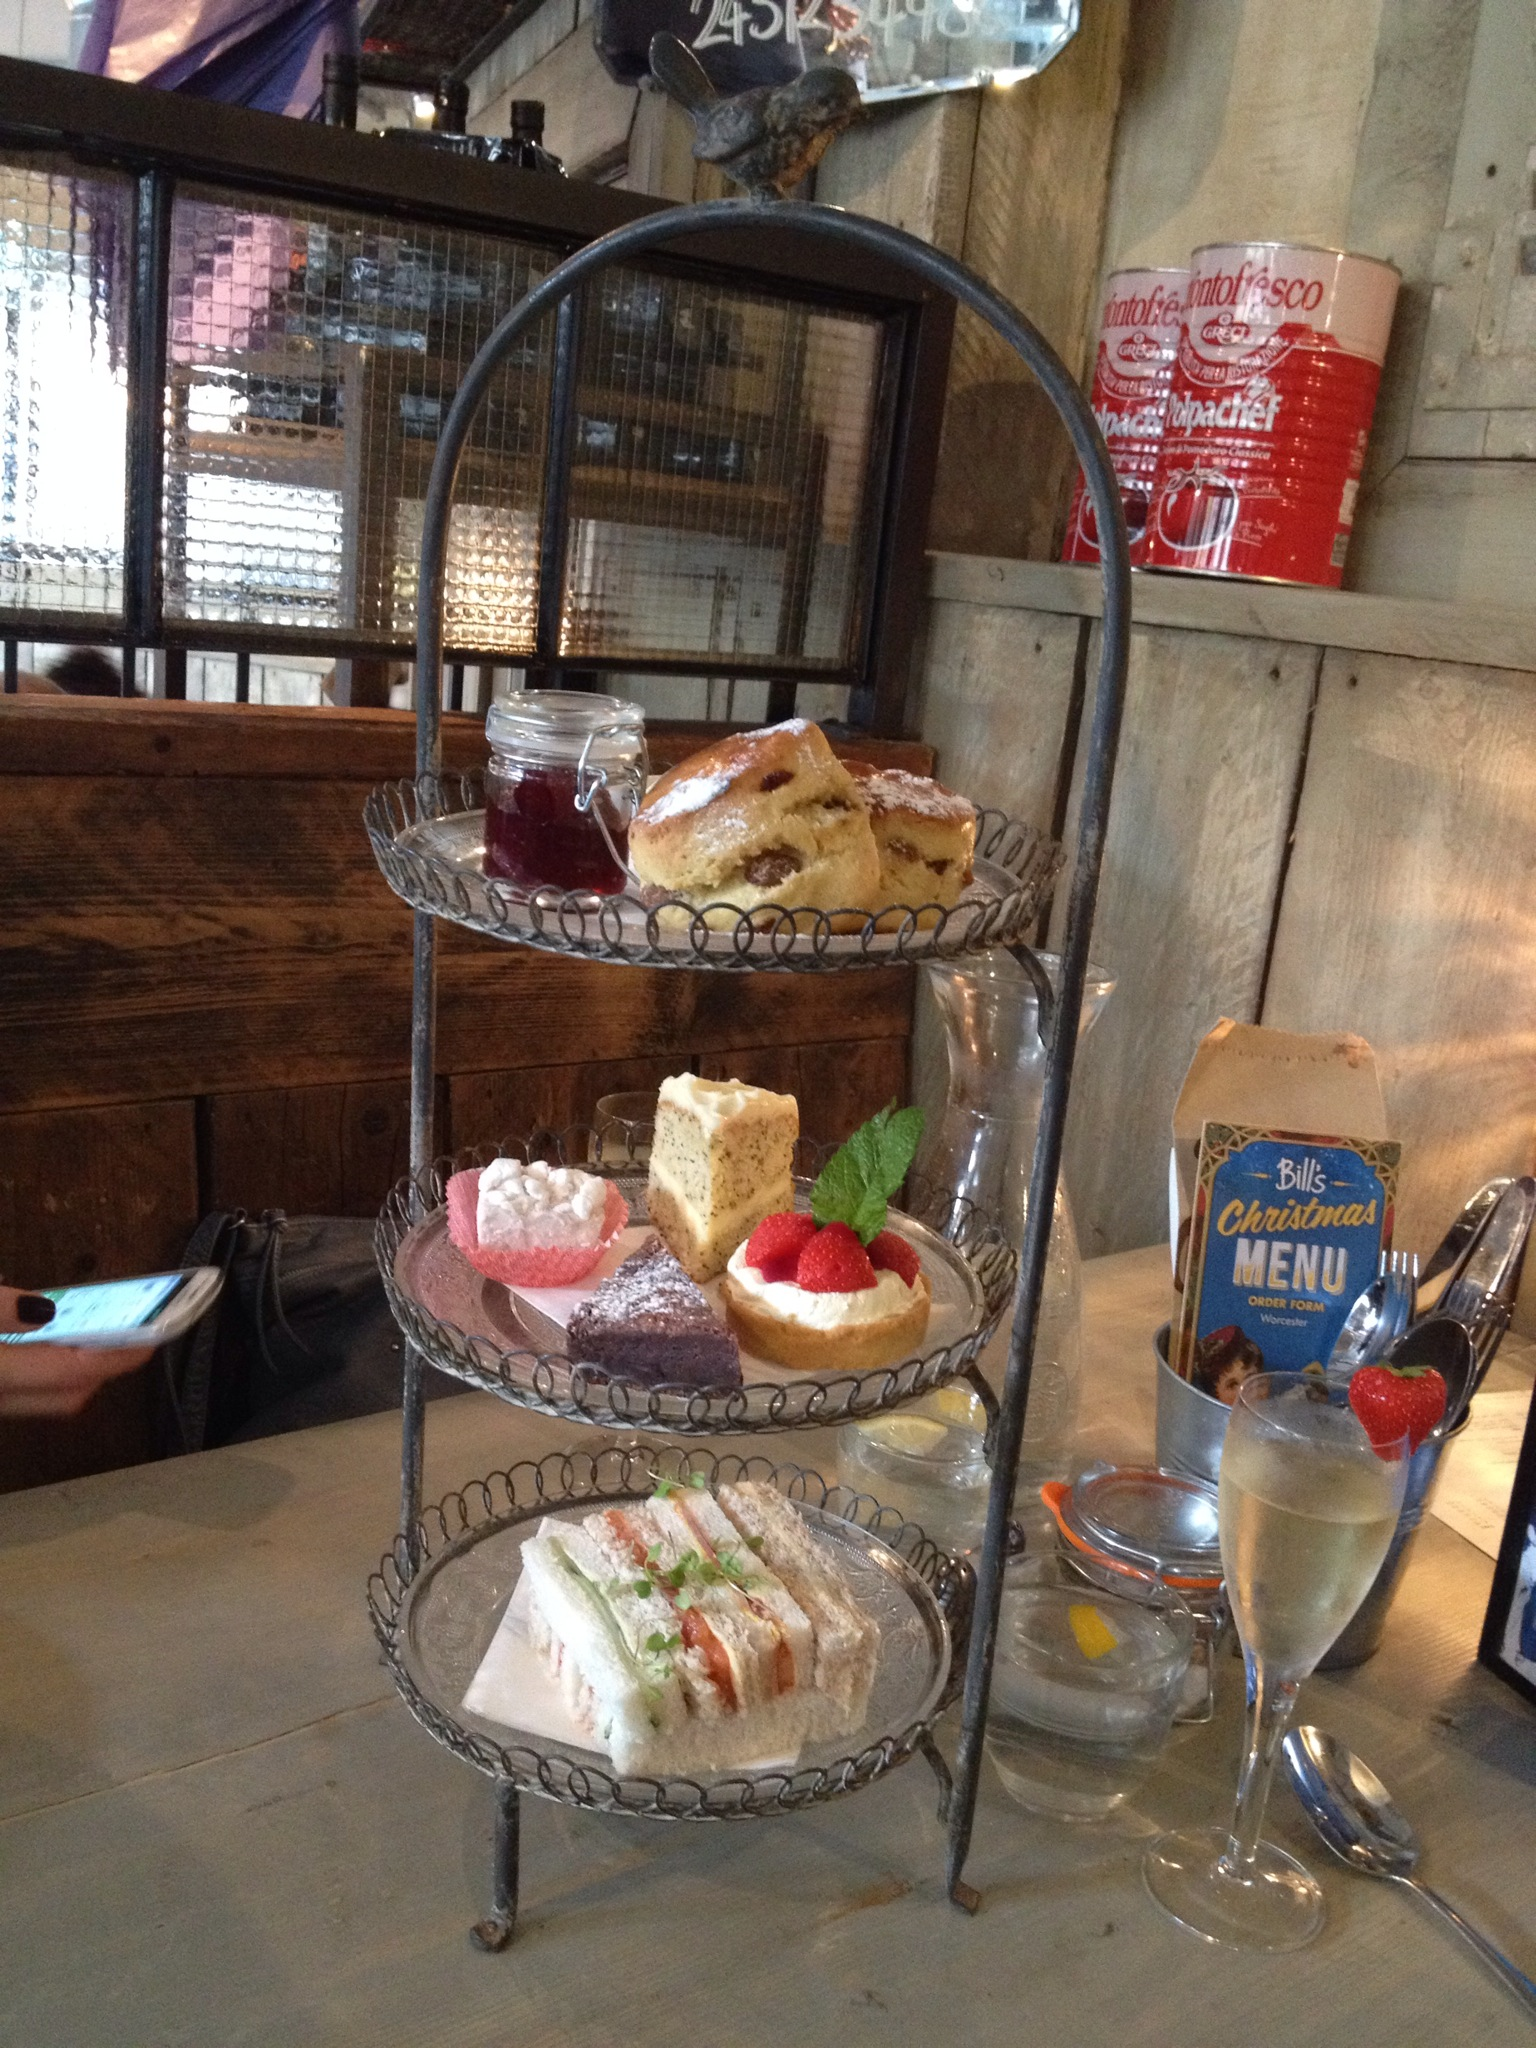 Afternoon Tea at Bill's Worcester